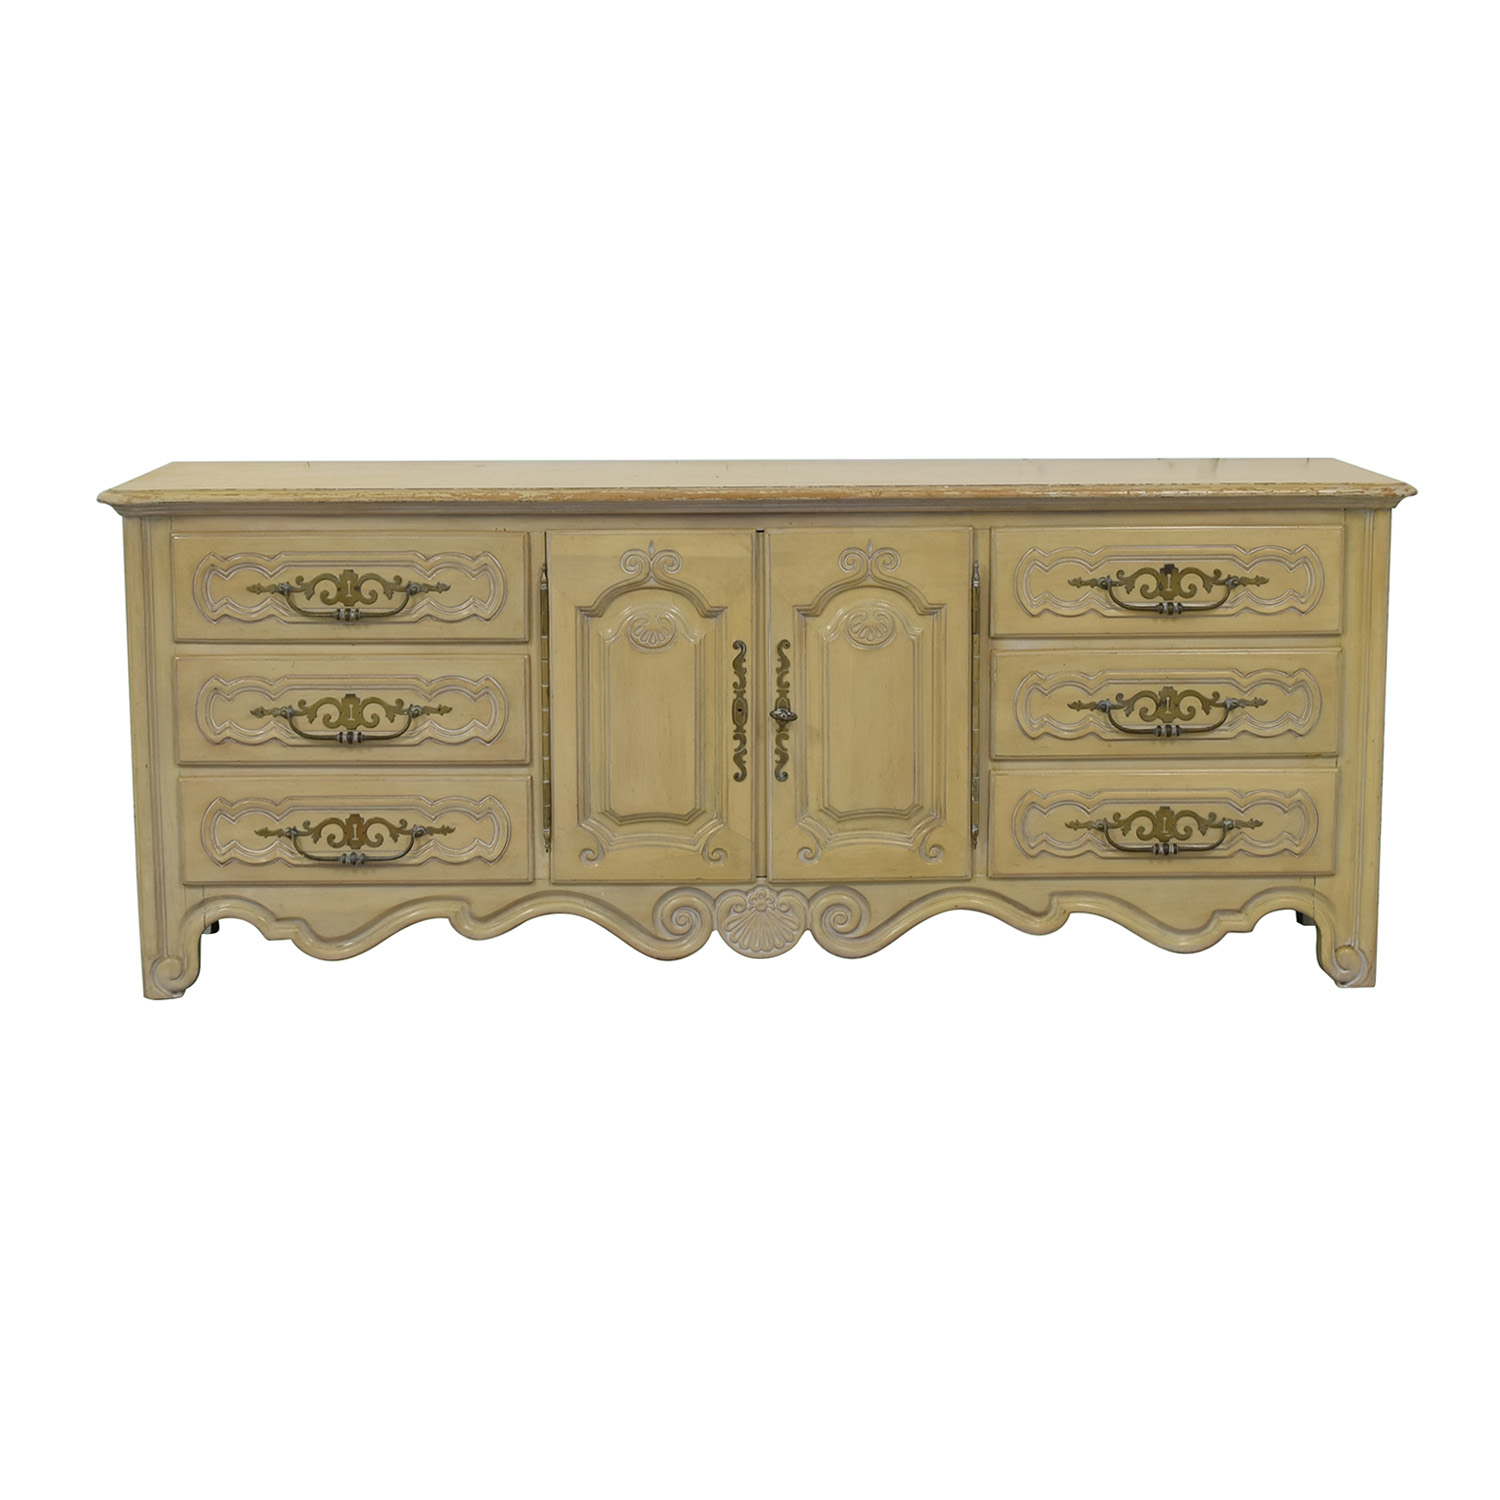 Drexel Drexel Country French Nine-Drawer Dresser second hand